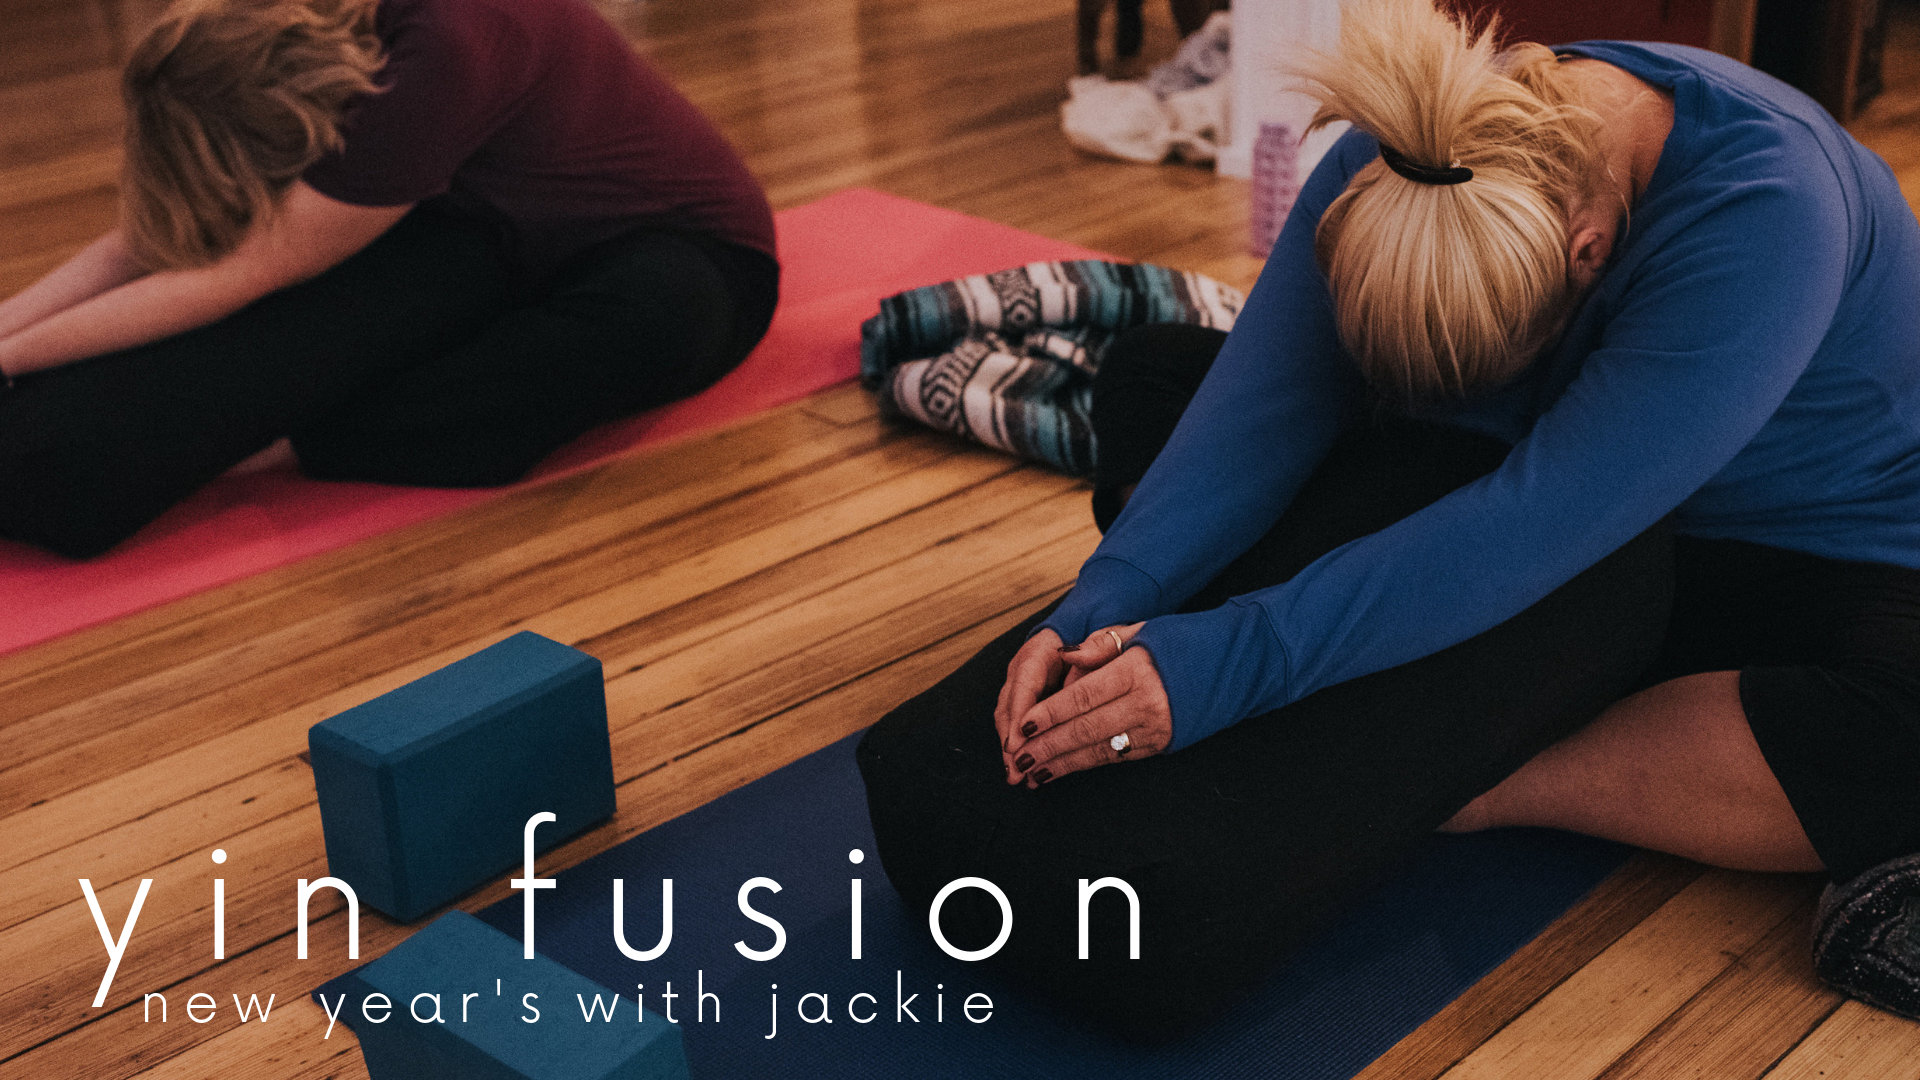 New Years Day: Yin Fusion with Jackie - Monday, January 1st from 10:00 - 11:15a.The first day of the year. A threshold to 2019.What a better way to begin than by tuning in and activating deep listening of the body and soul. In this 75 Minute Yin Fusion Flow, Jackie will take you through a journey of the heart and leave you feeling cracked open and ready for the year.Pre-registration is recommended. Regular class rates and first week free apply!